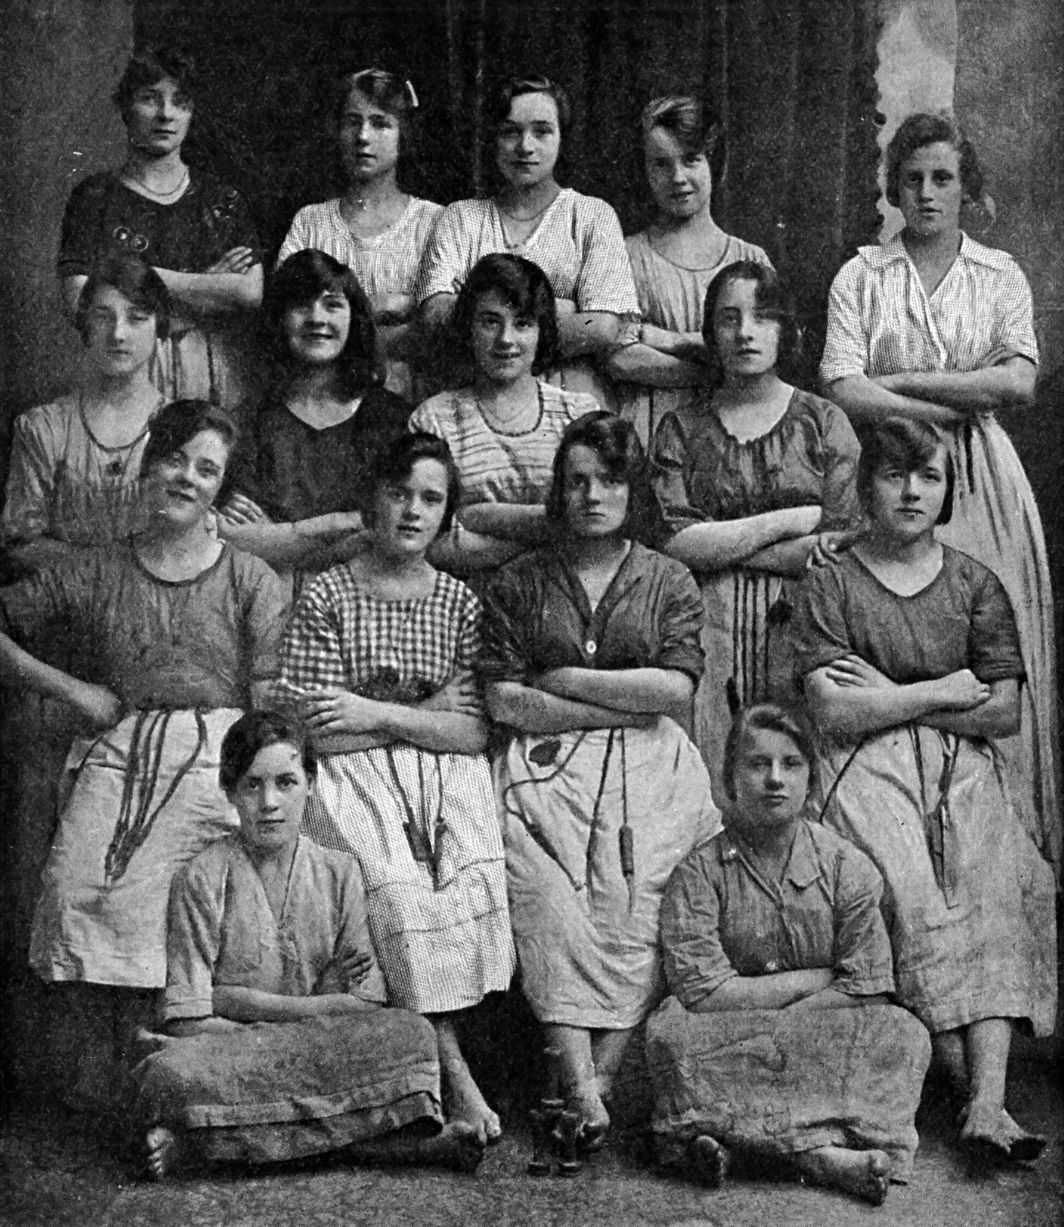 Irish Linen Girls, ca. 1900